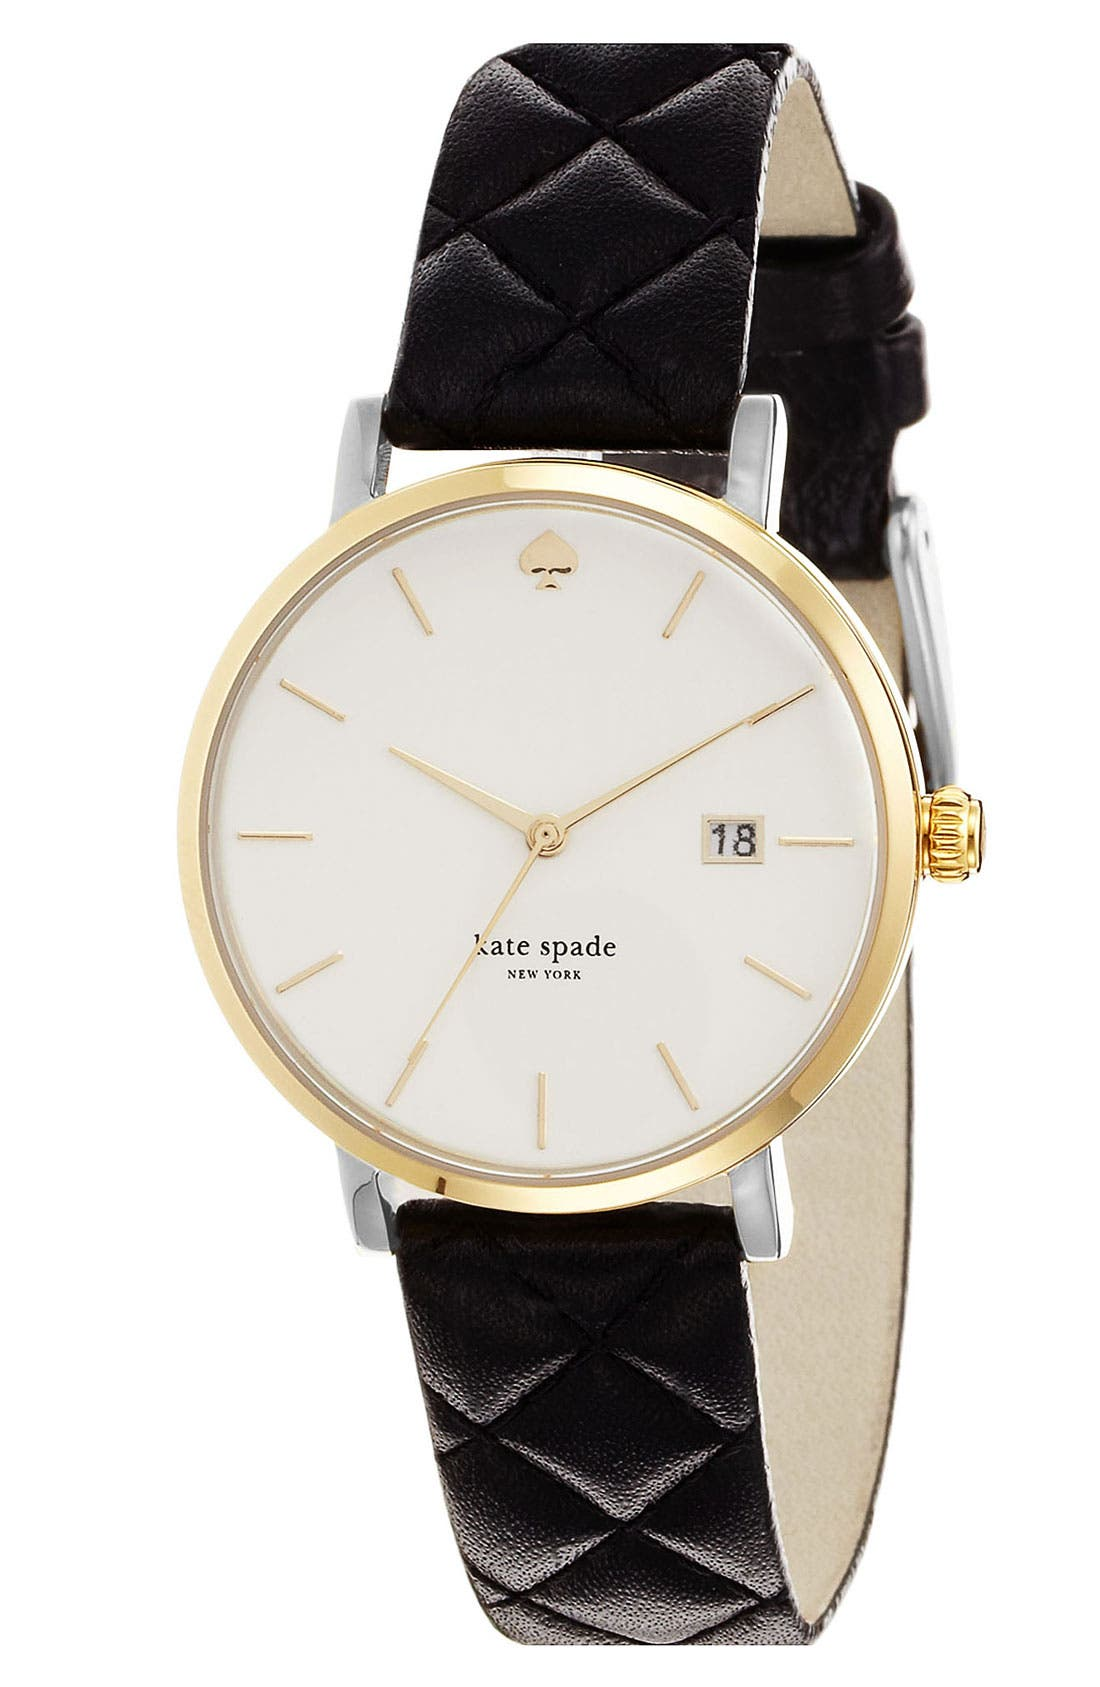 KATE SPADE NEW YORK, 'metro grand' quilted strap watch, 38mm, Alternate thumbnail 4, color, 001